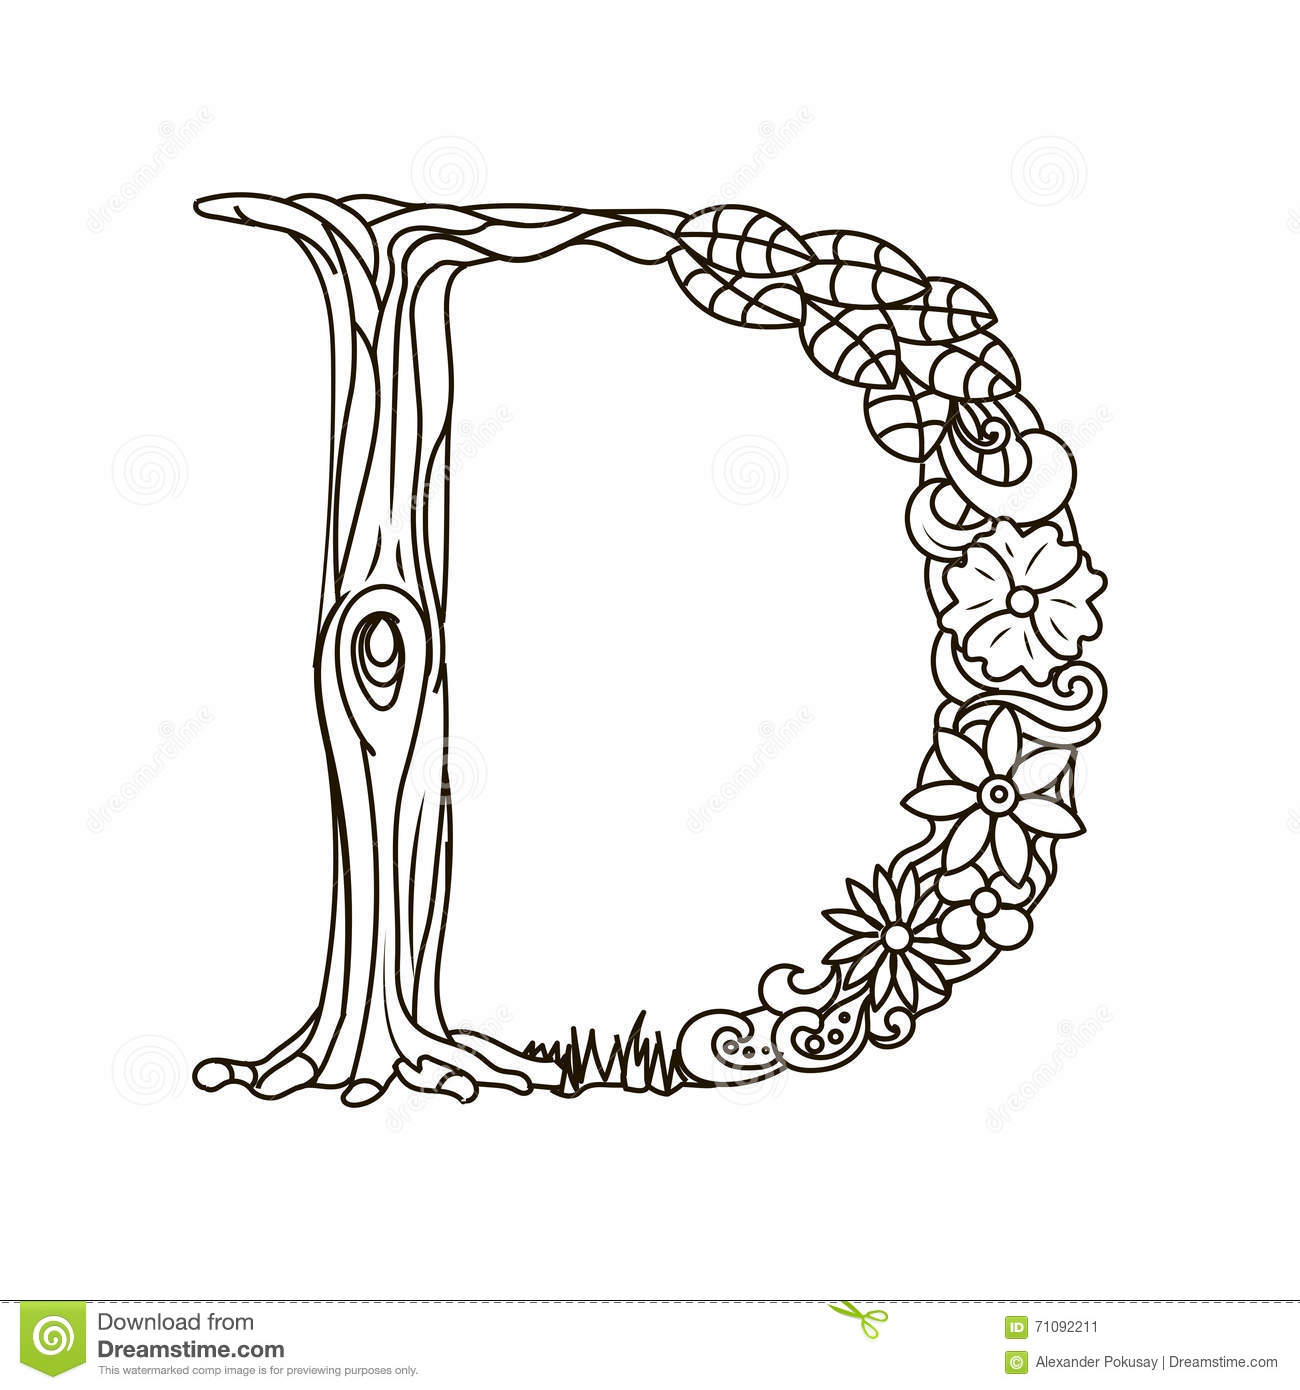 Letter D Coloring Book For Adults Vector Stock Image